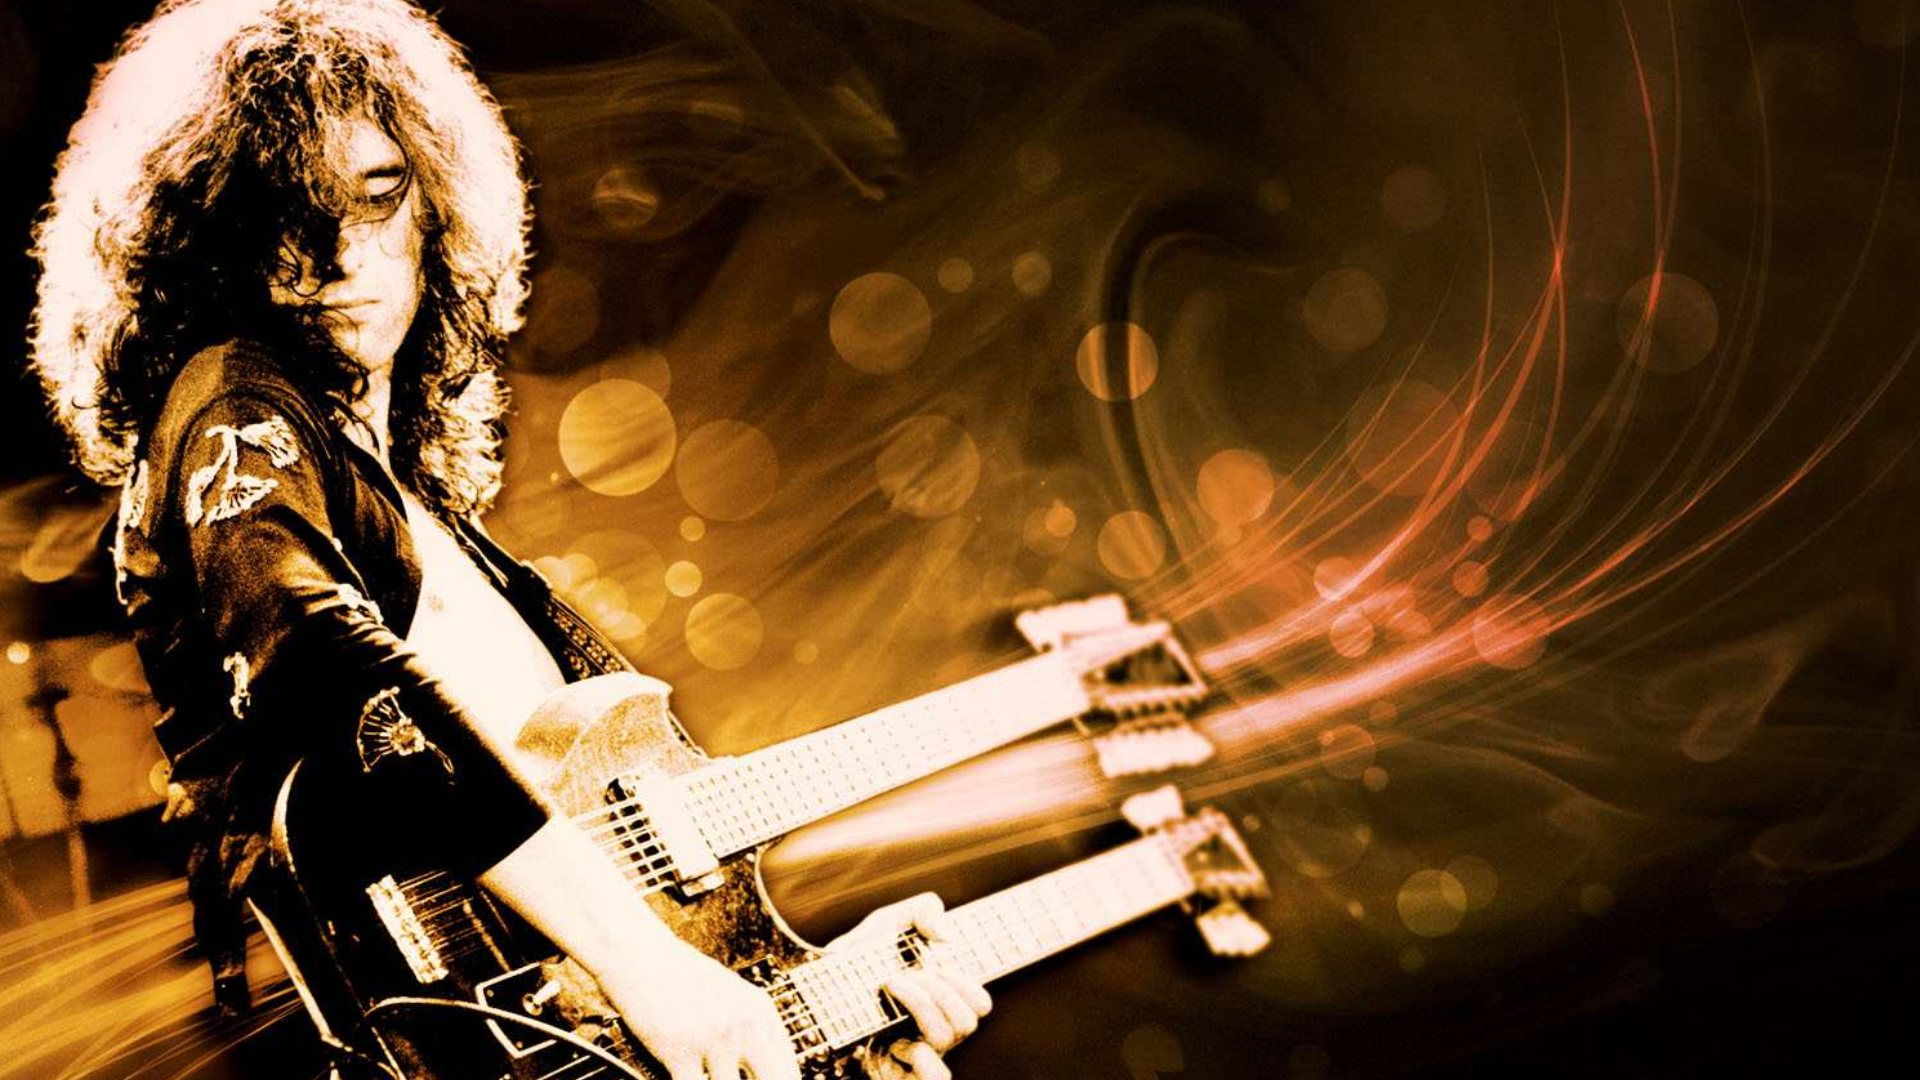 Jimmy Page hd 1920x1080   imagenes   wallpapers gratis   Famosos 1920x1080